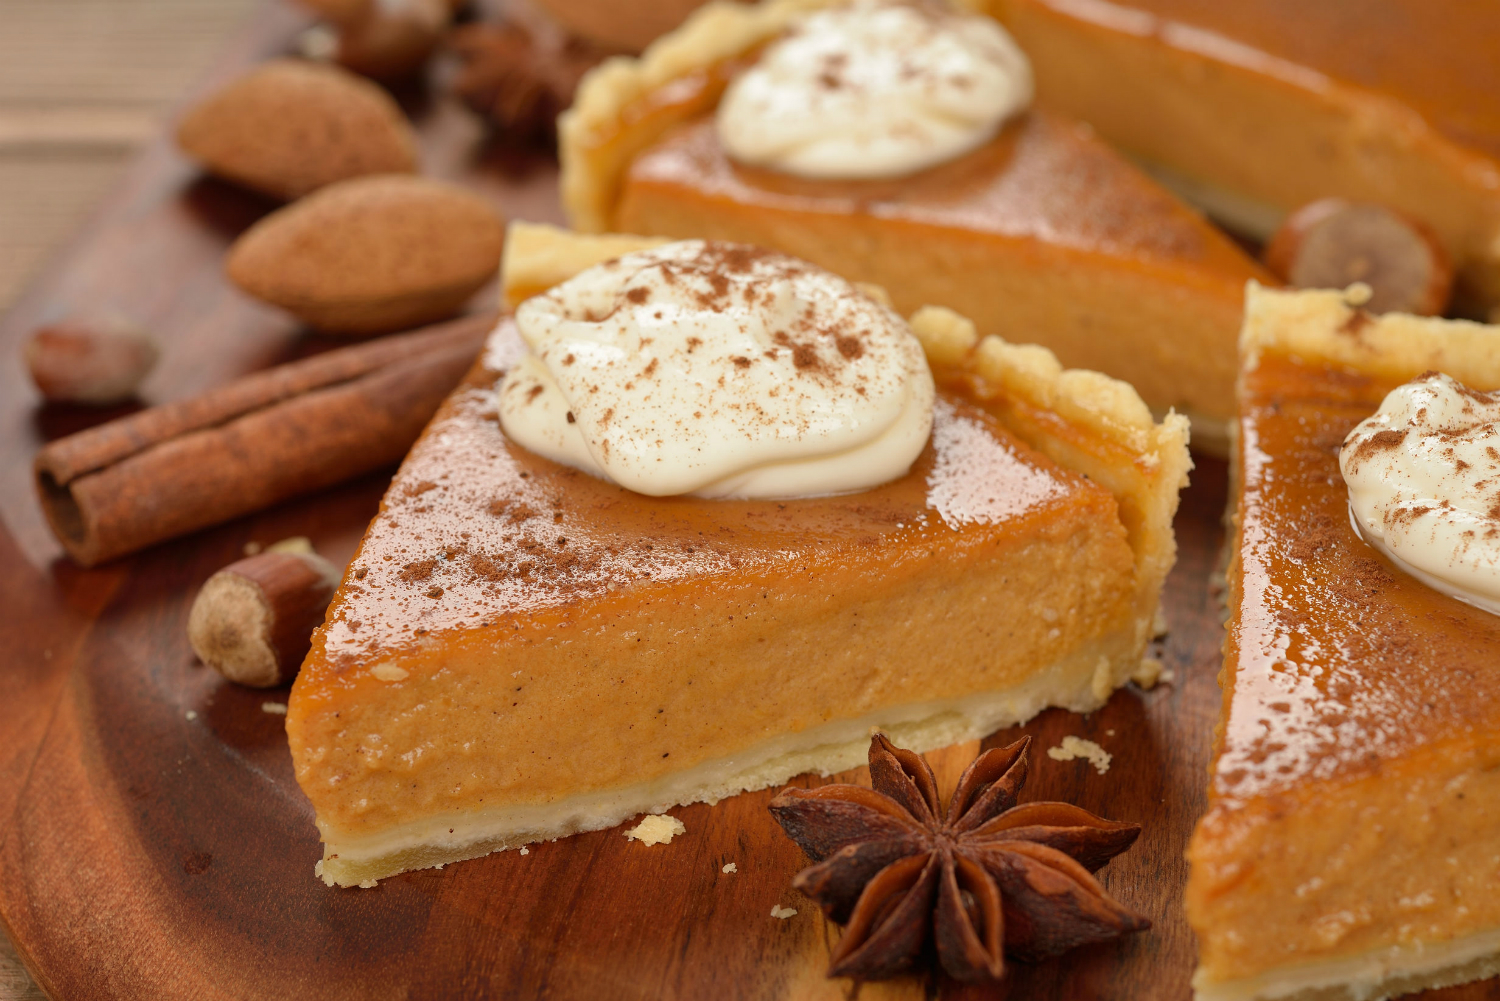 How to Make Pumpkin Pie Without an Oven | Digital Trends